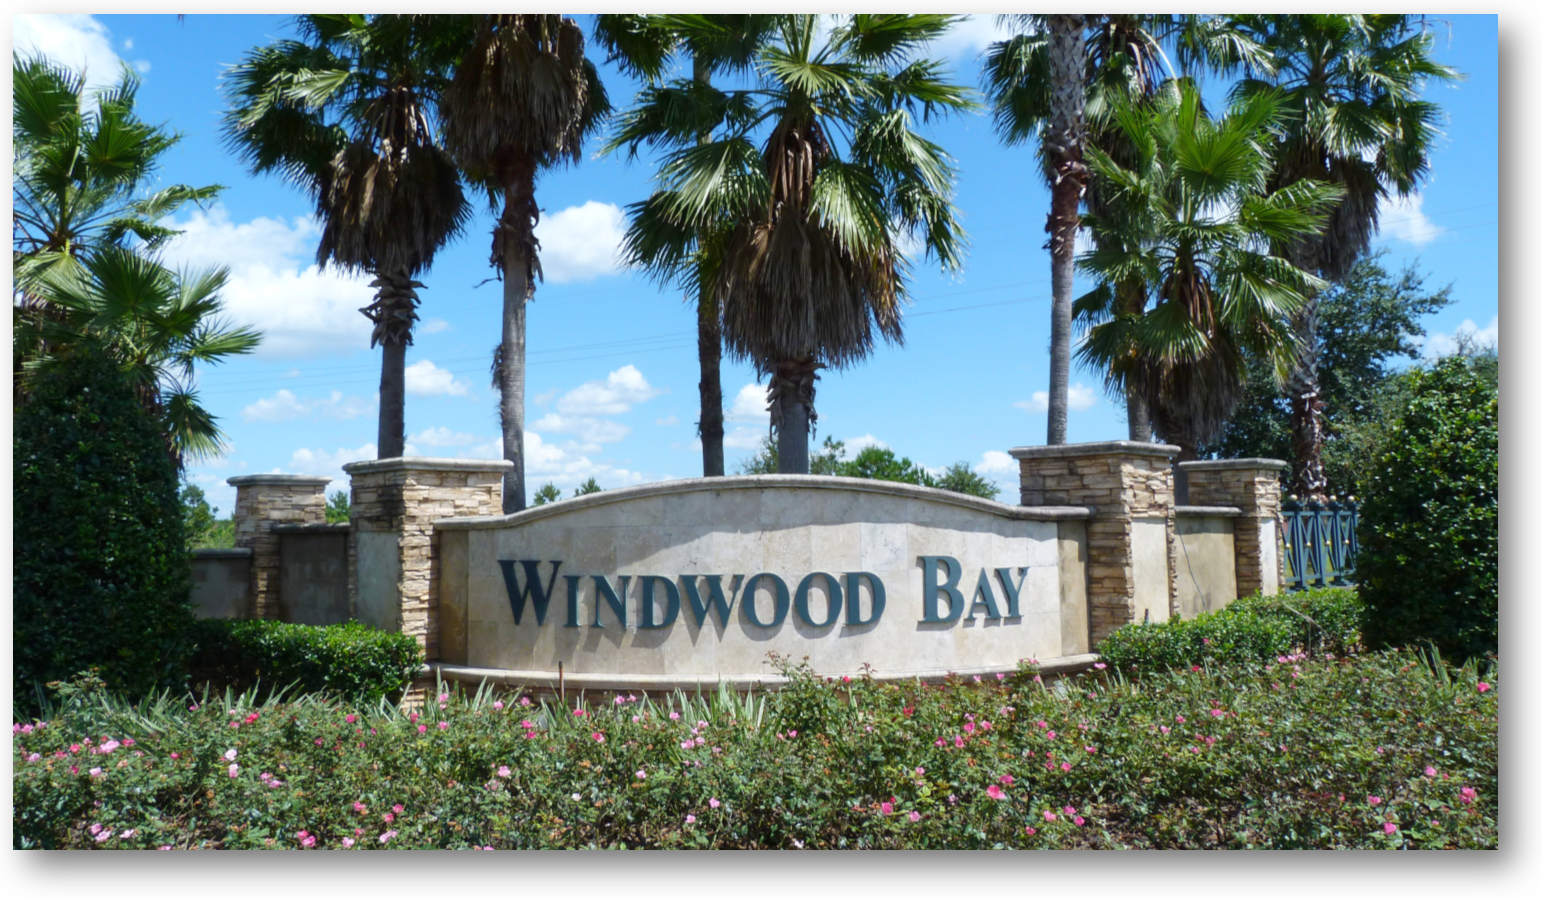 Images of Real Estate for Sale in Windwood Bay Davenport FL